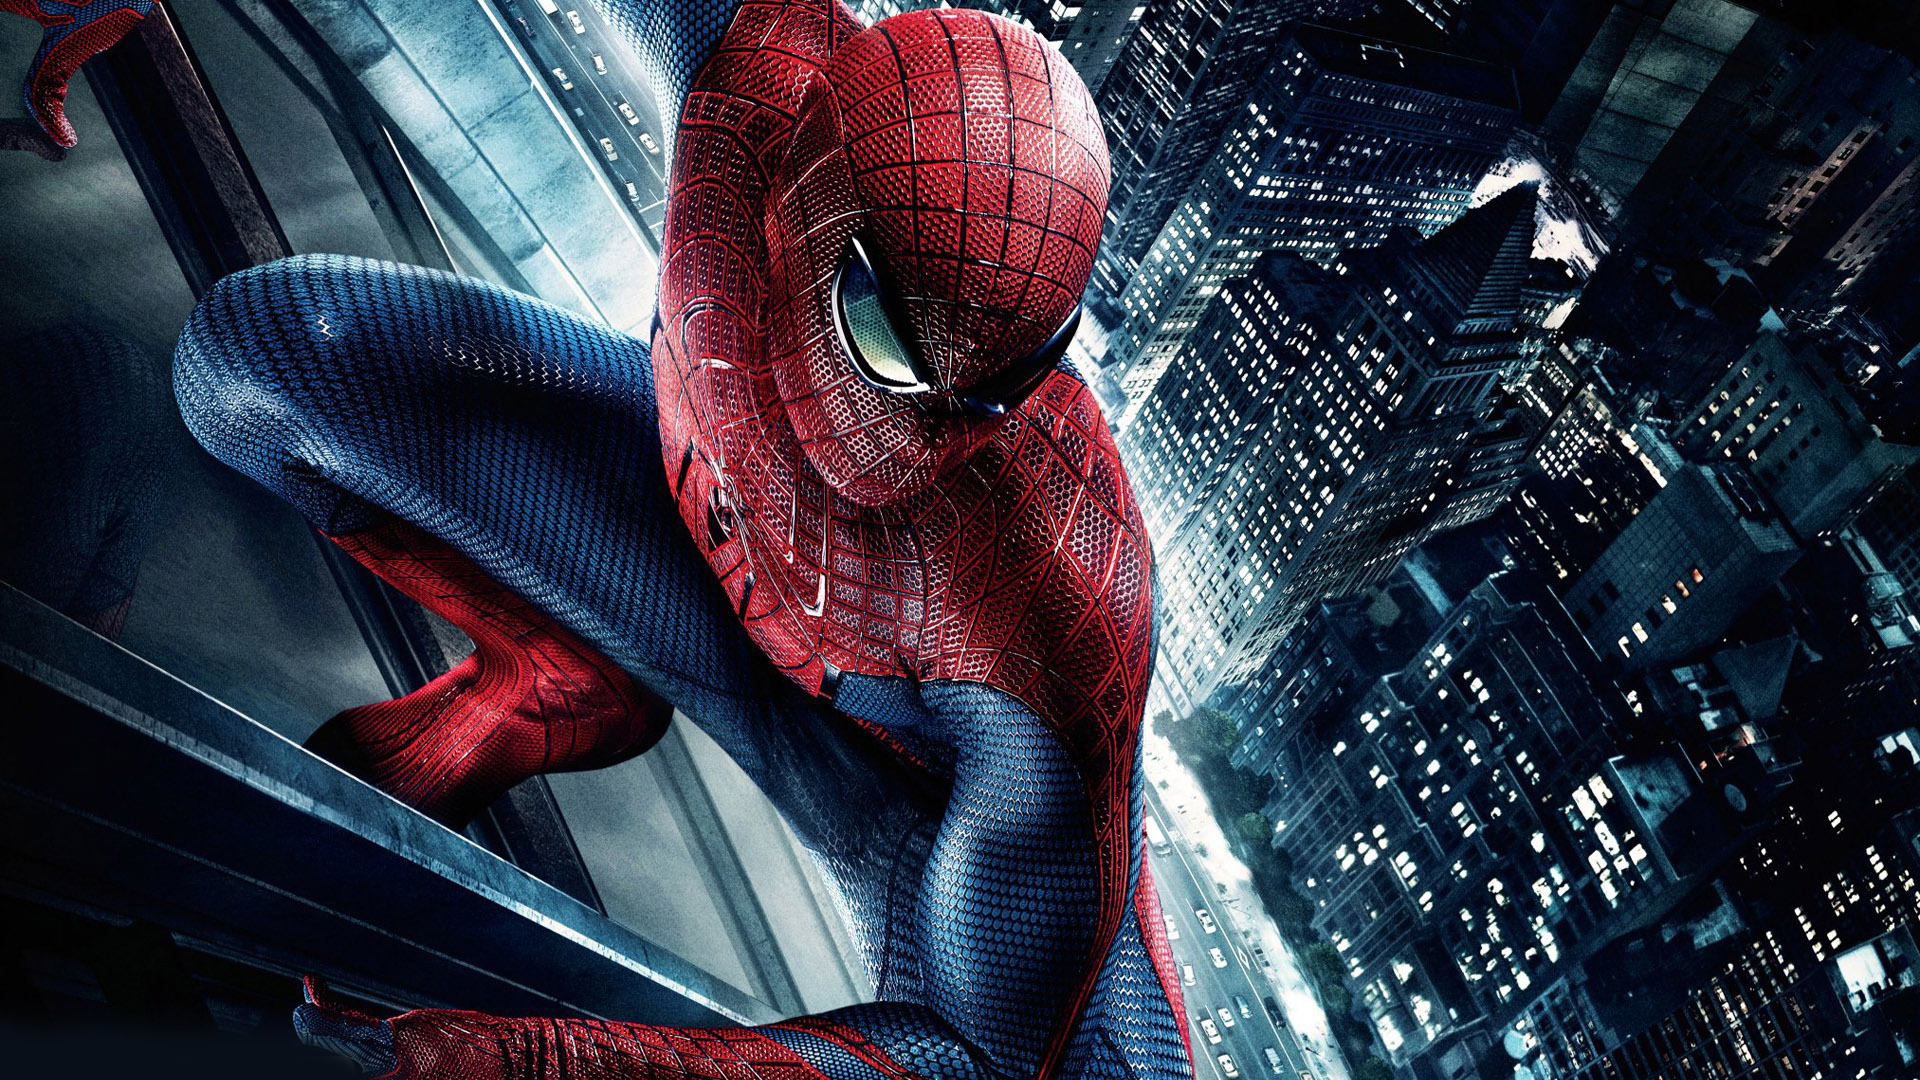 the amazing spider man 3 wallpaper - sf wallpaper